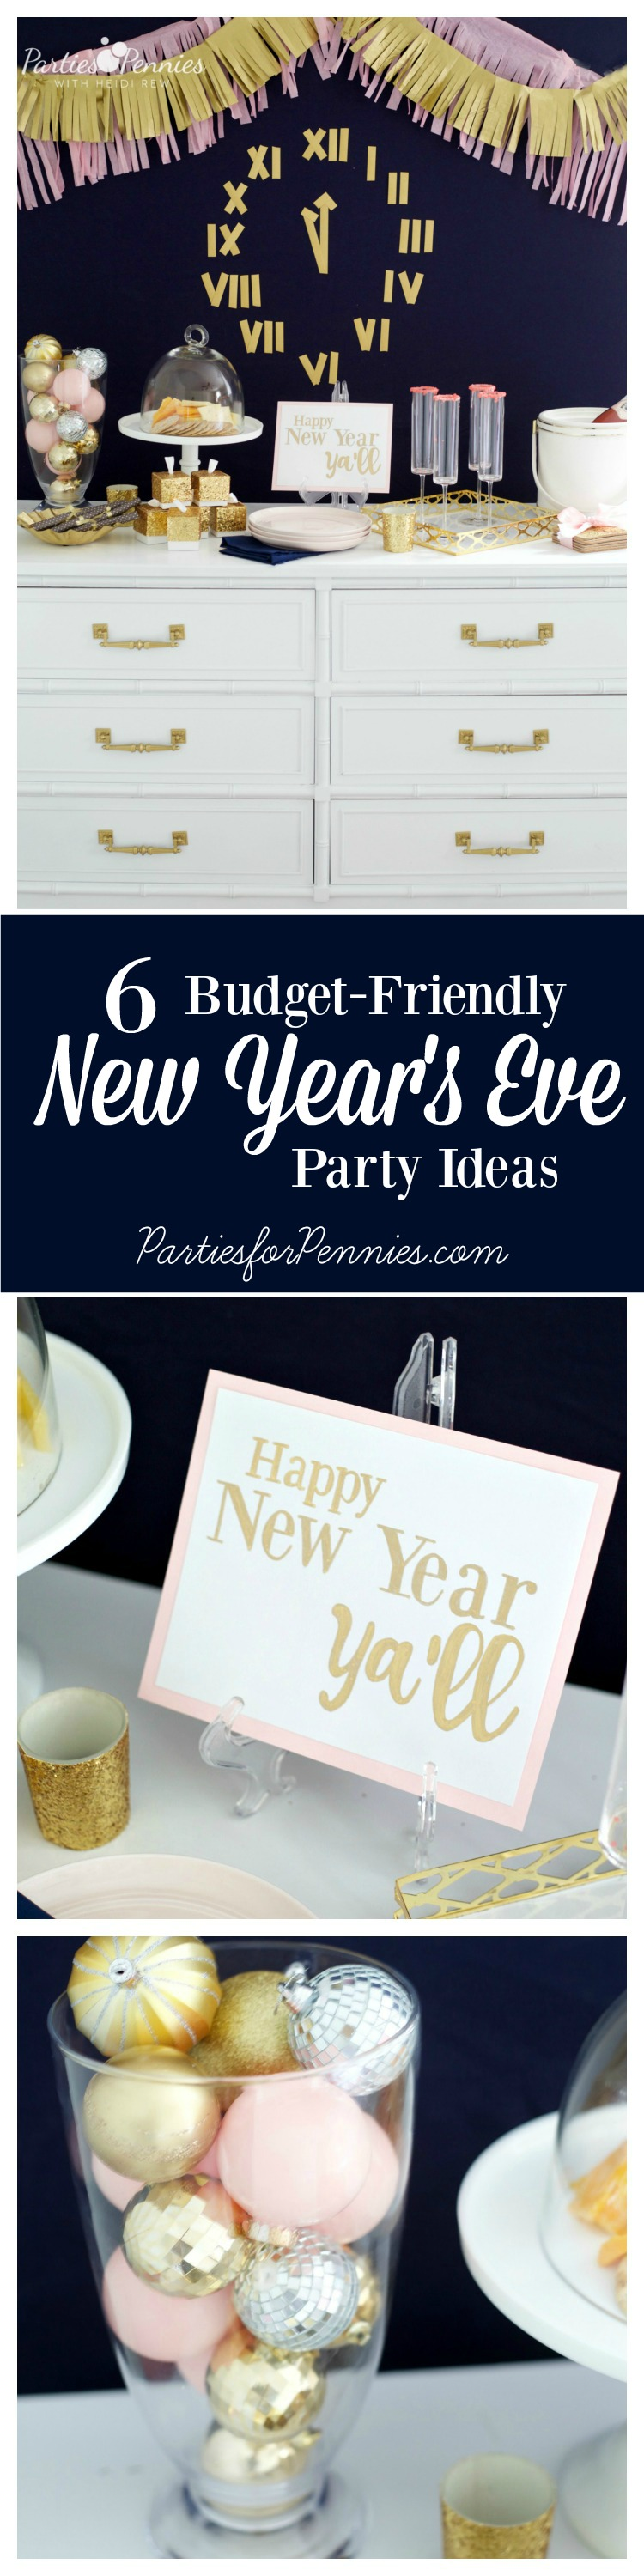 6 Budget-Friendly New Year's Eve Party Ideas - Parties for ...